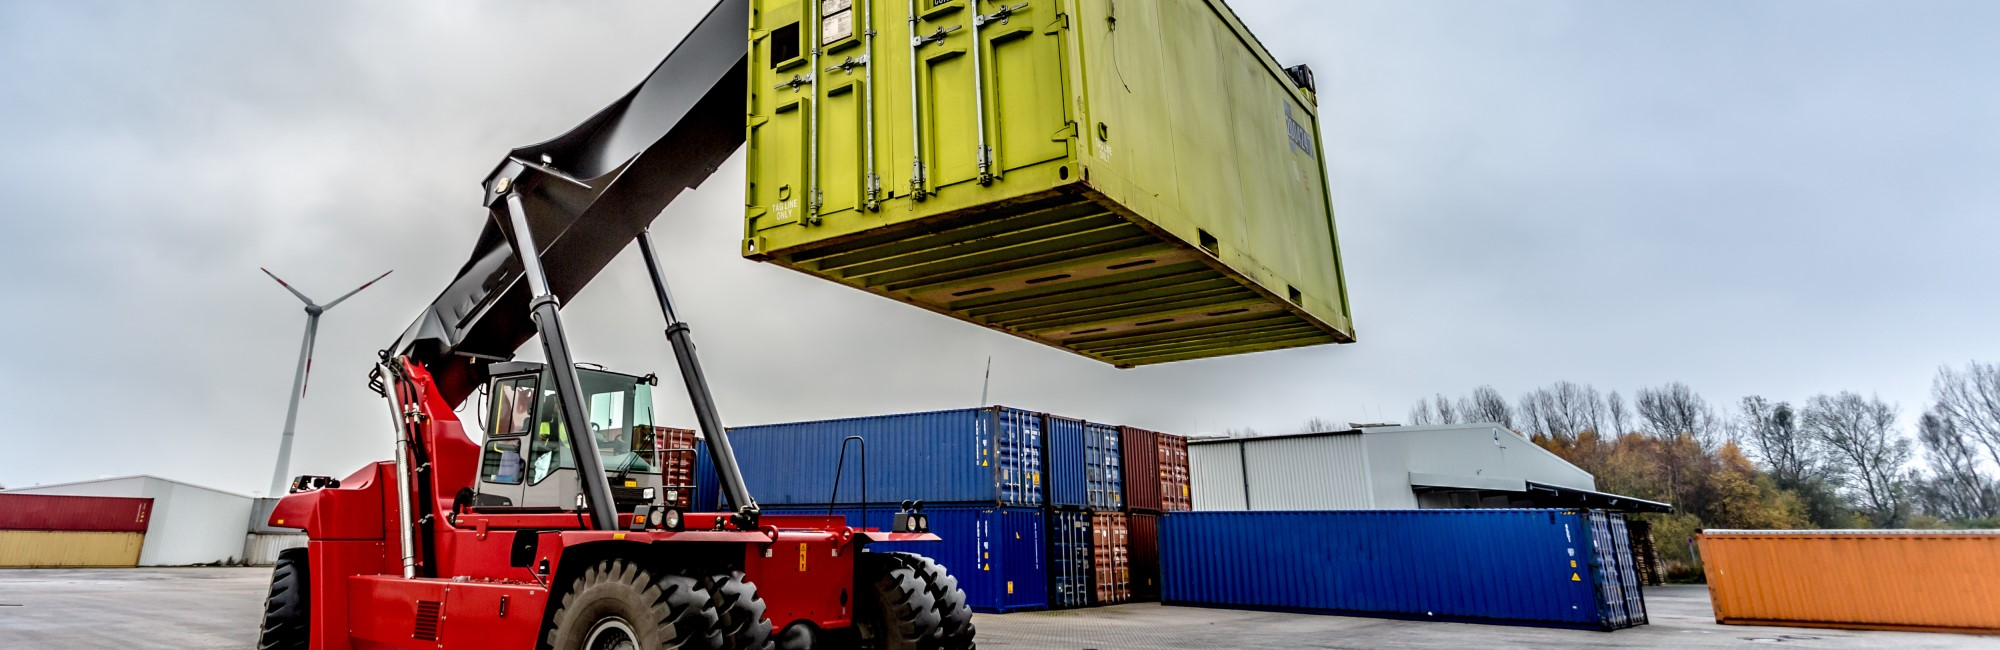 Container Handler lifting shipping container